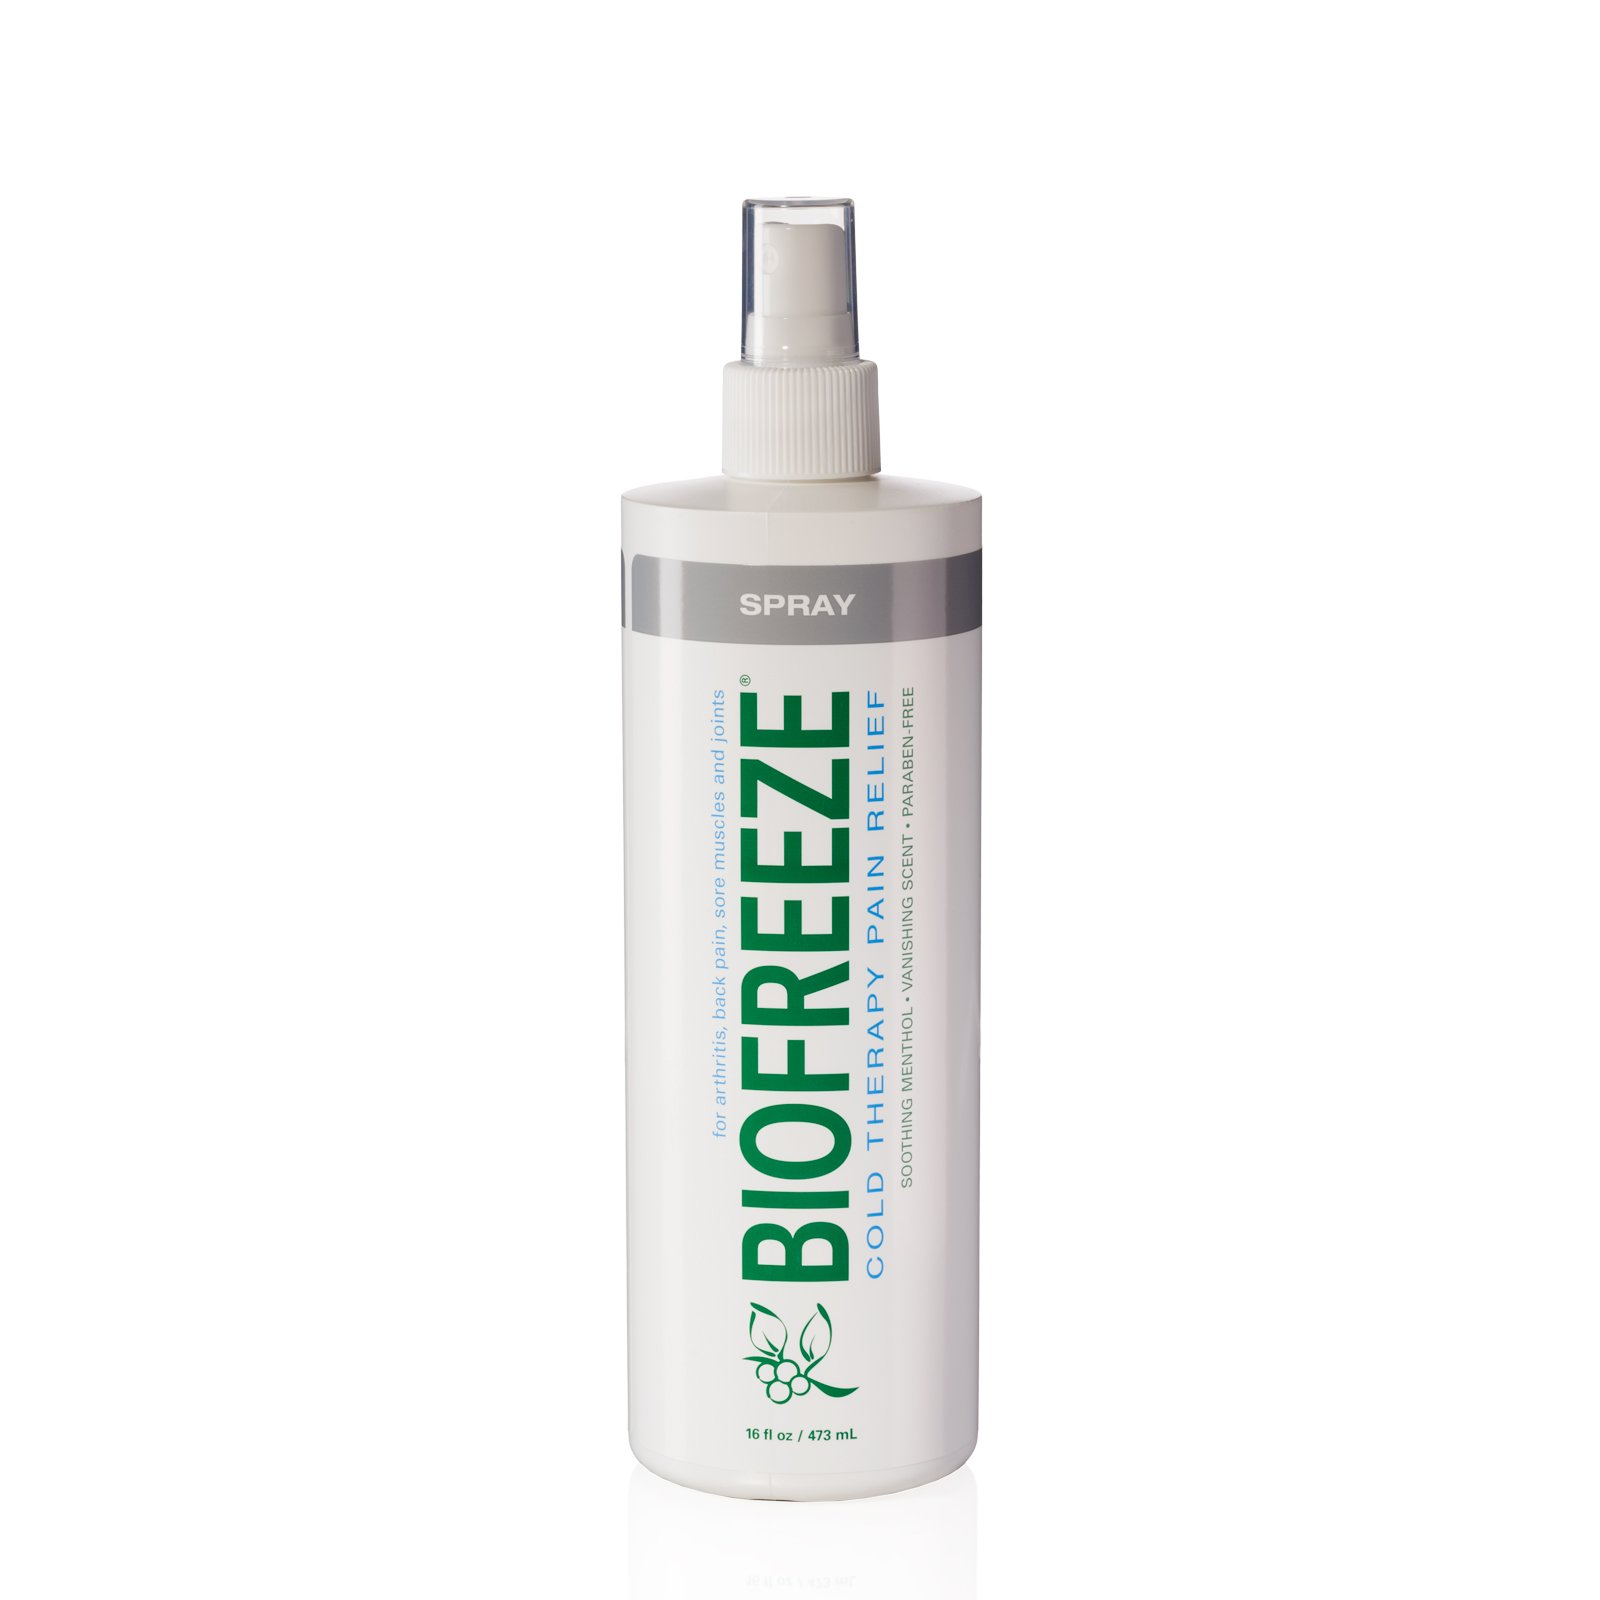 Biofreeze Pain Relief Spray for Arthritis, 16 oz. Bottle with Pump, Fast Acting Cooling Pain Reliever for Muscle, Joint, & Back Pain, Cold Topical Analgesic with Colorless Formula, 10.5% Menthol by Biofreeze